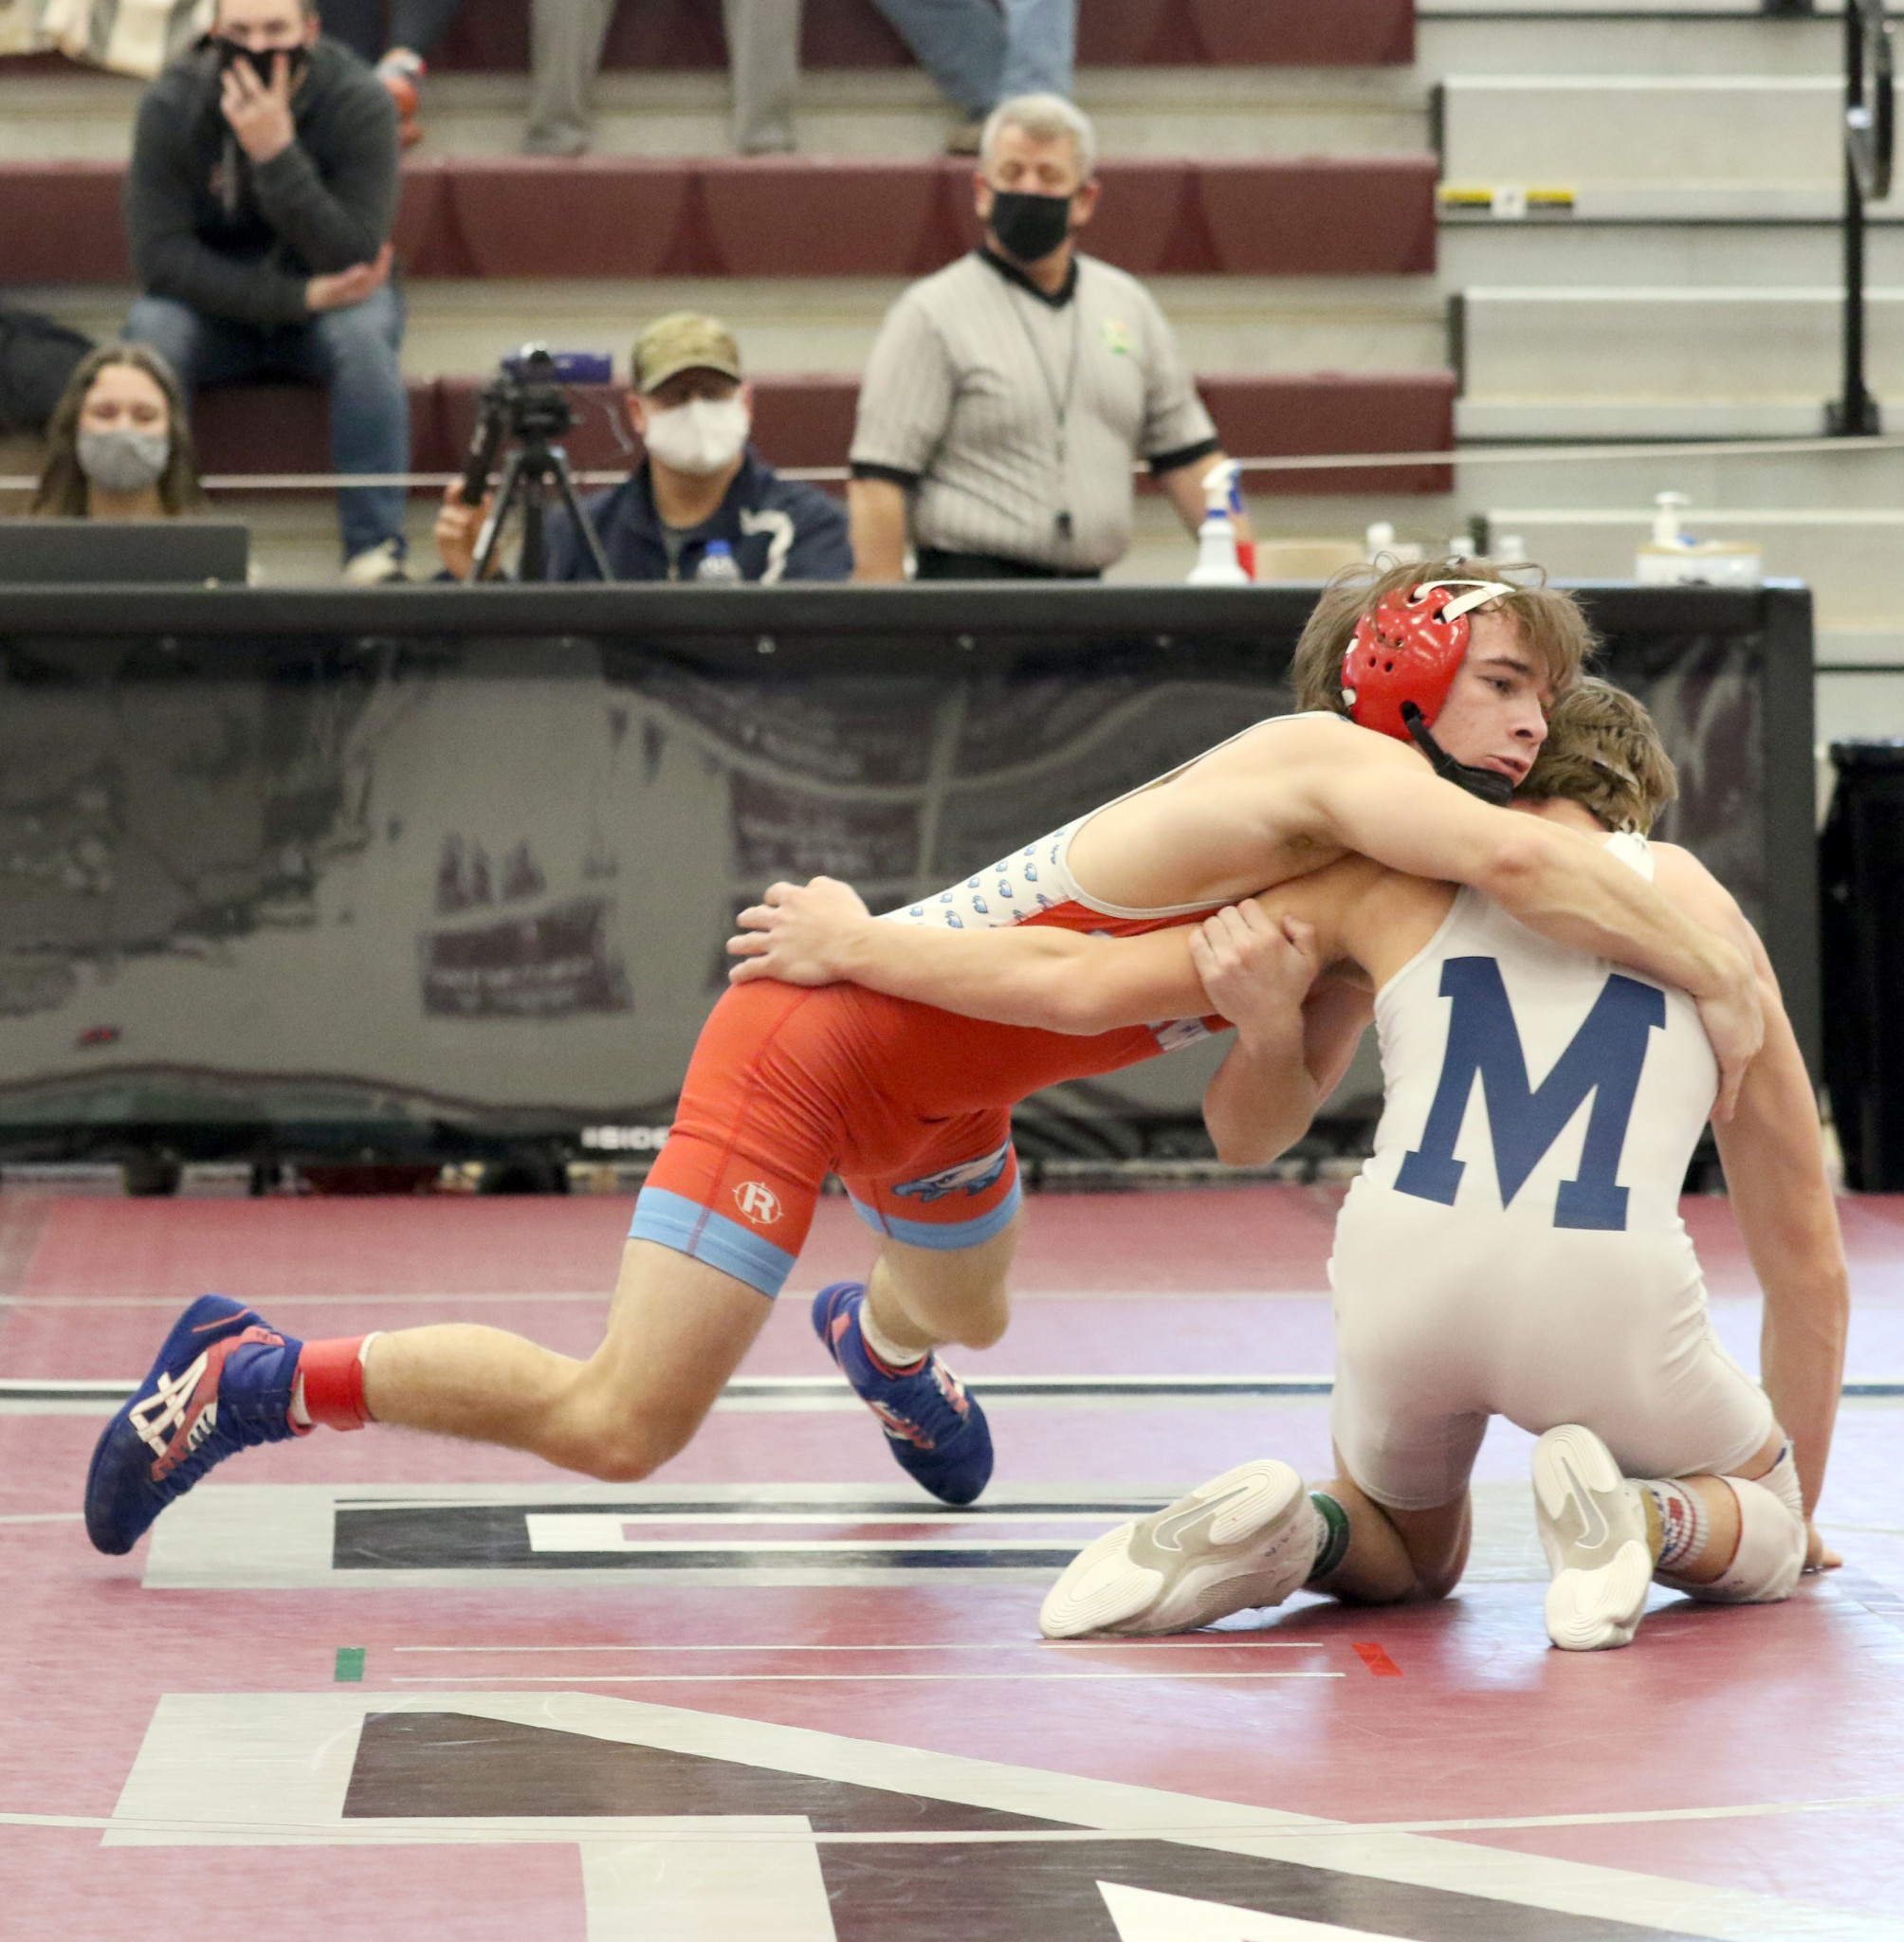 Eastwood senior Brandon Hahn won the Division III district 120-pound championship at Rossford High School. Hahn scored a 7-3 decision over Sandusky St. Mary's Riley Prosser in the title match to advance to state, where he finished second. (Photo by Doug Hise)